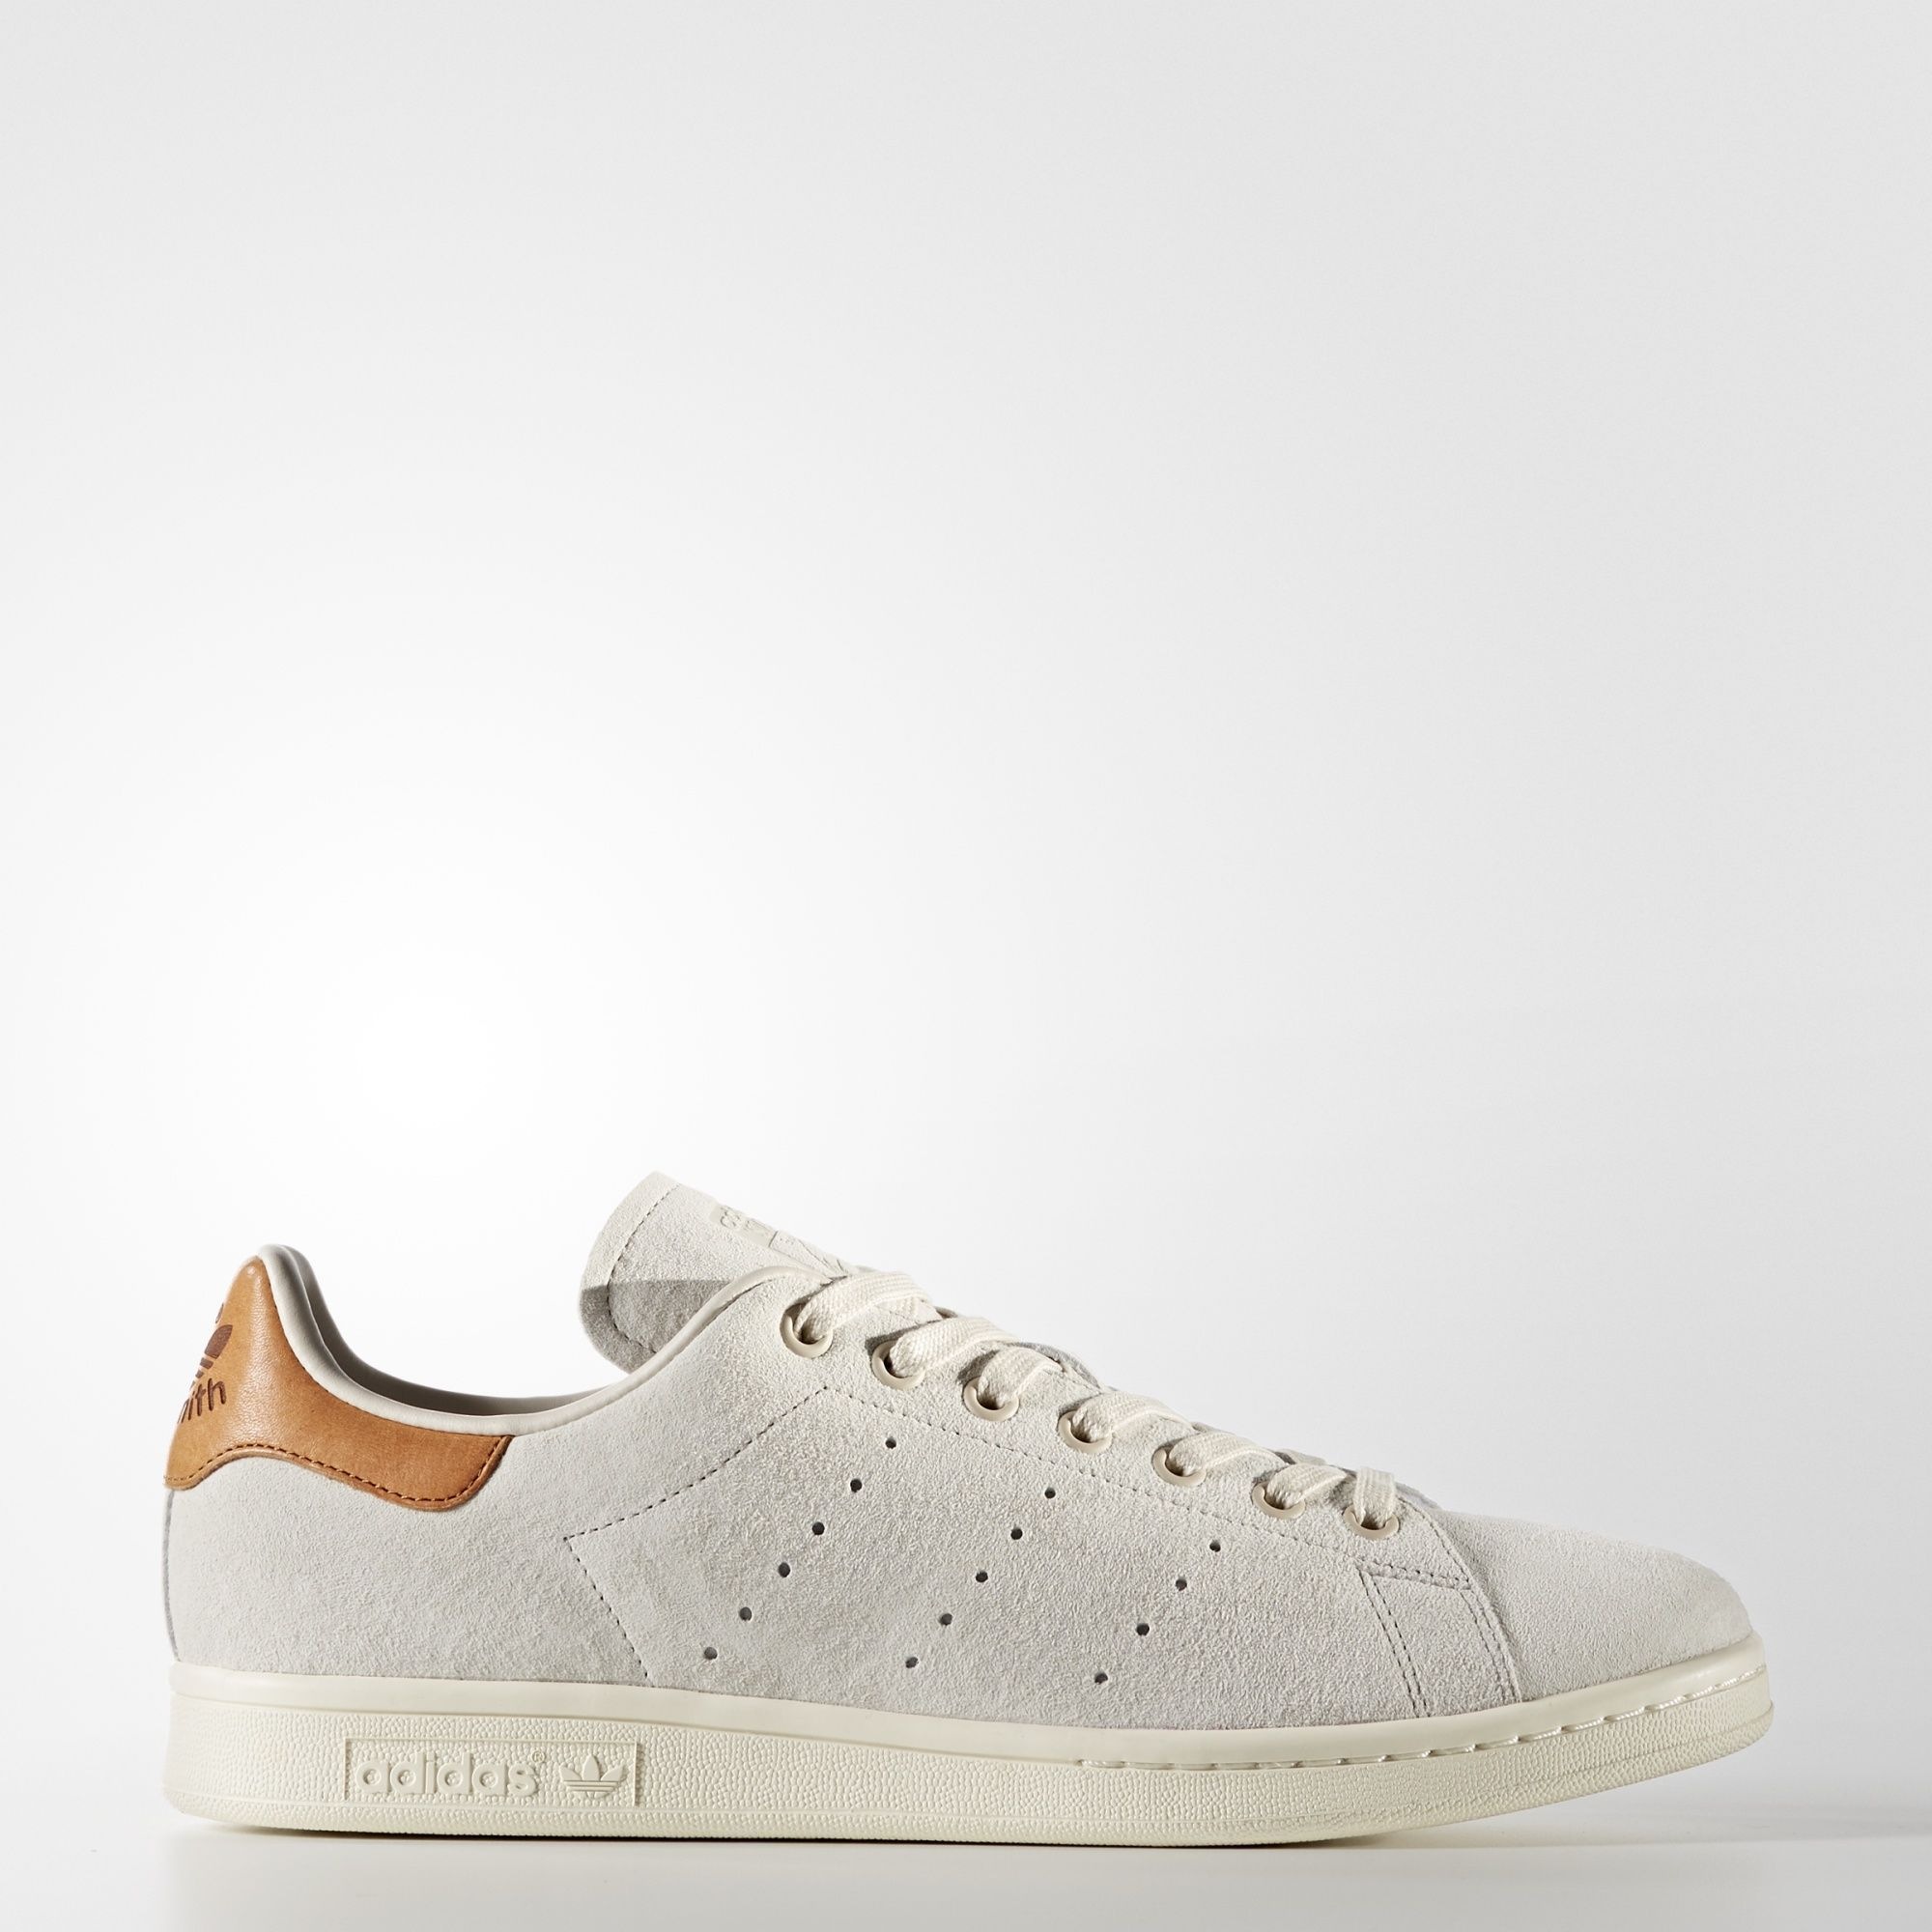 meilleures baskets ad8a6 c5181 adidas - Stan Smith Shoes | Shoes | Stan smith shoes, Adidas ...